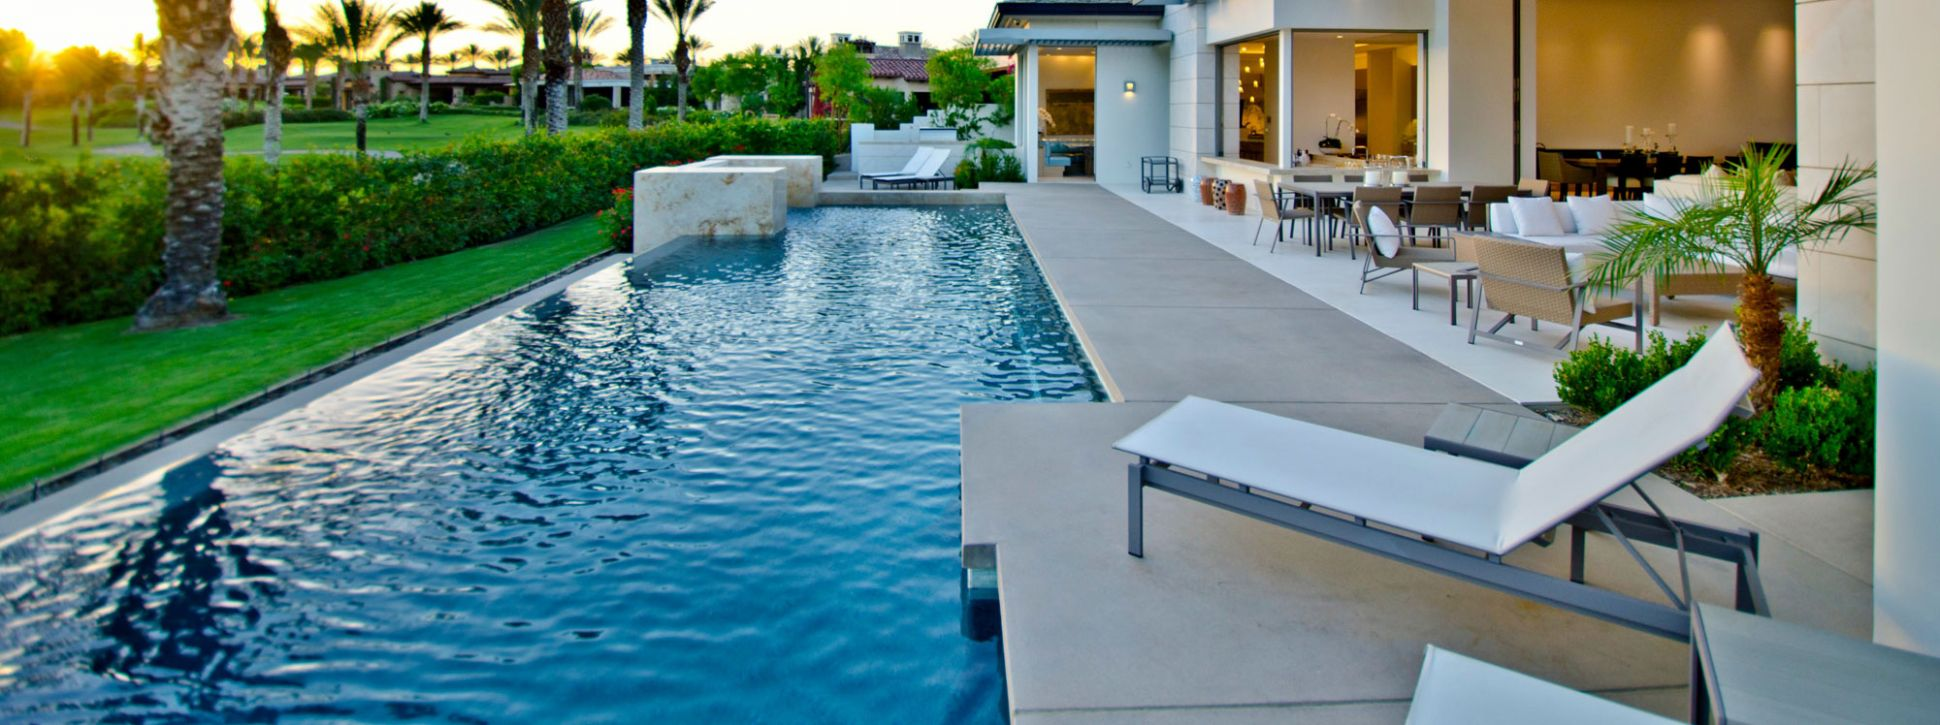 The Benefits of Building a Backyard Pool | Azure Pools - pool enhancement ideas